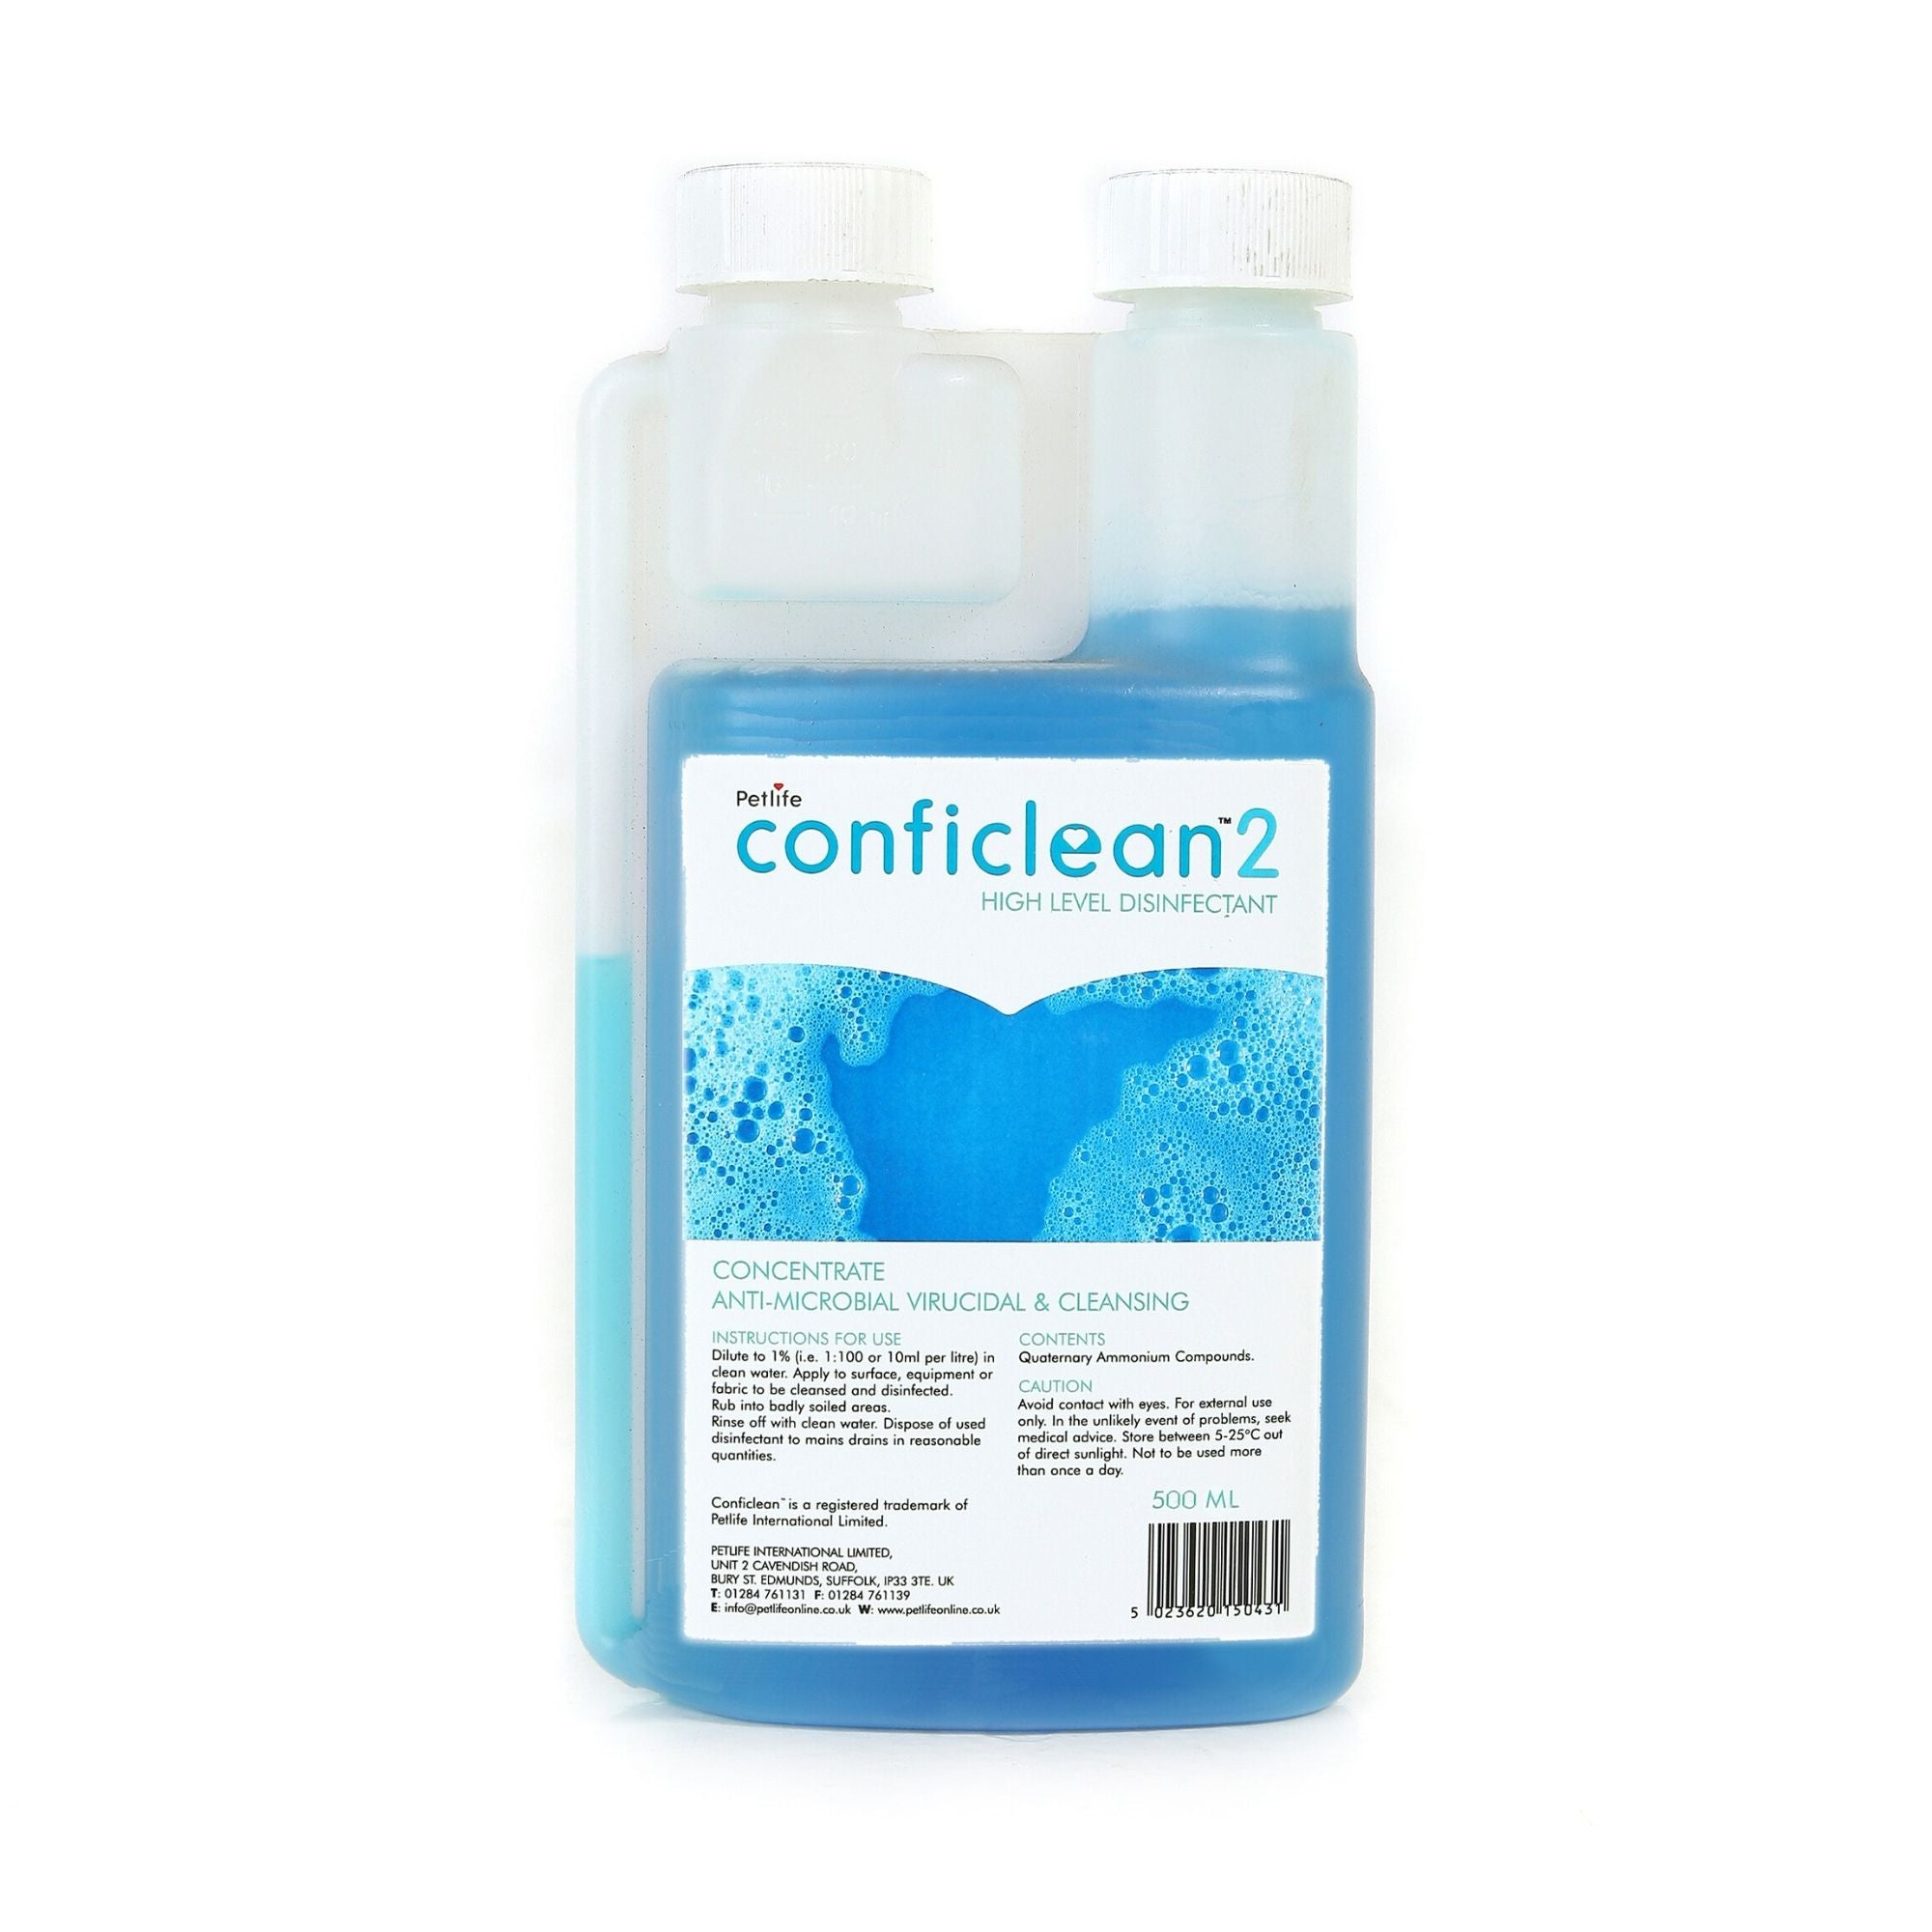 Conficlean2 Concentrated High Level Disinfectant | Barks & Bunnies